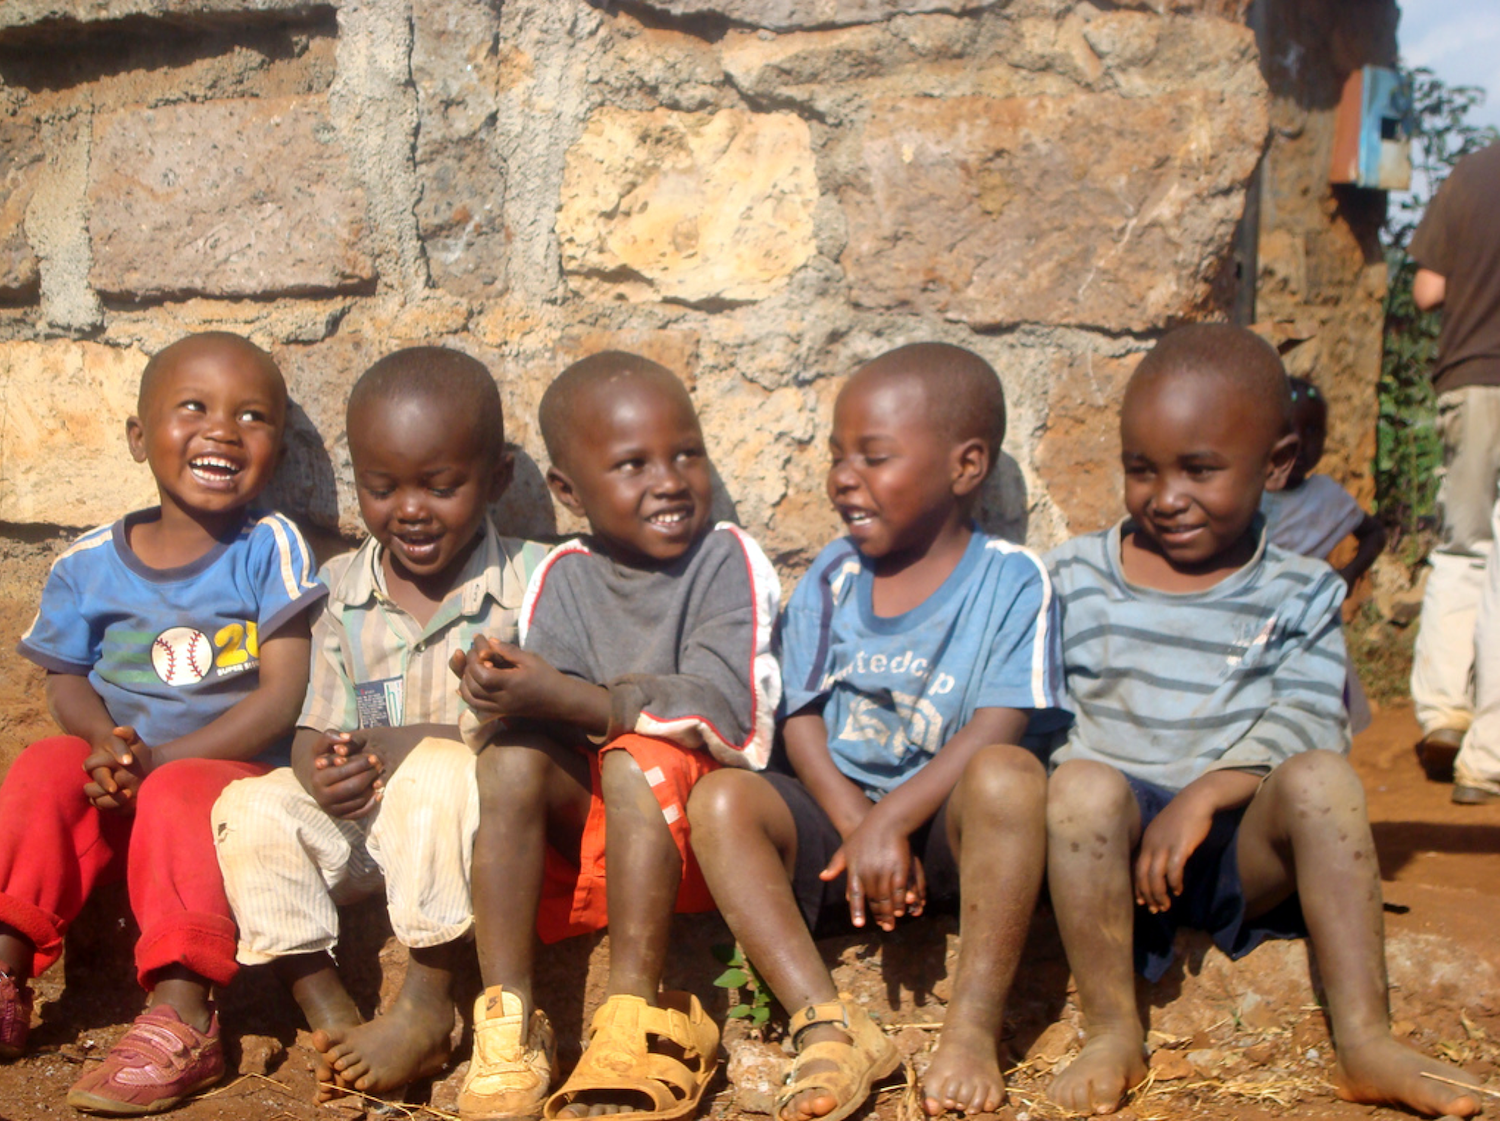 In Sub-Saharan Africa 1 on 8 children die before 5 years old